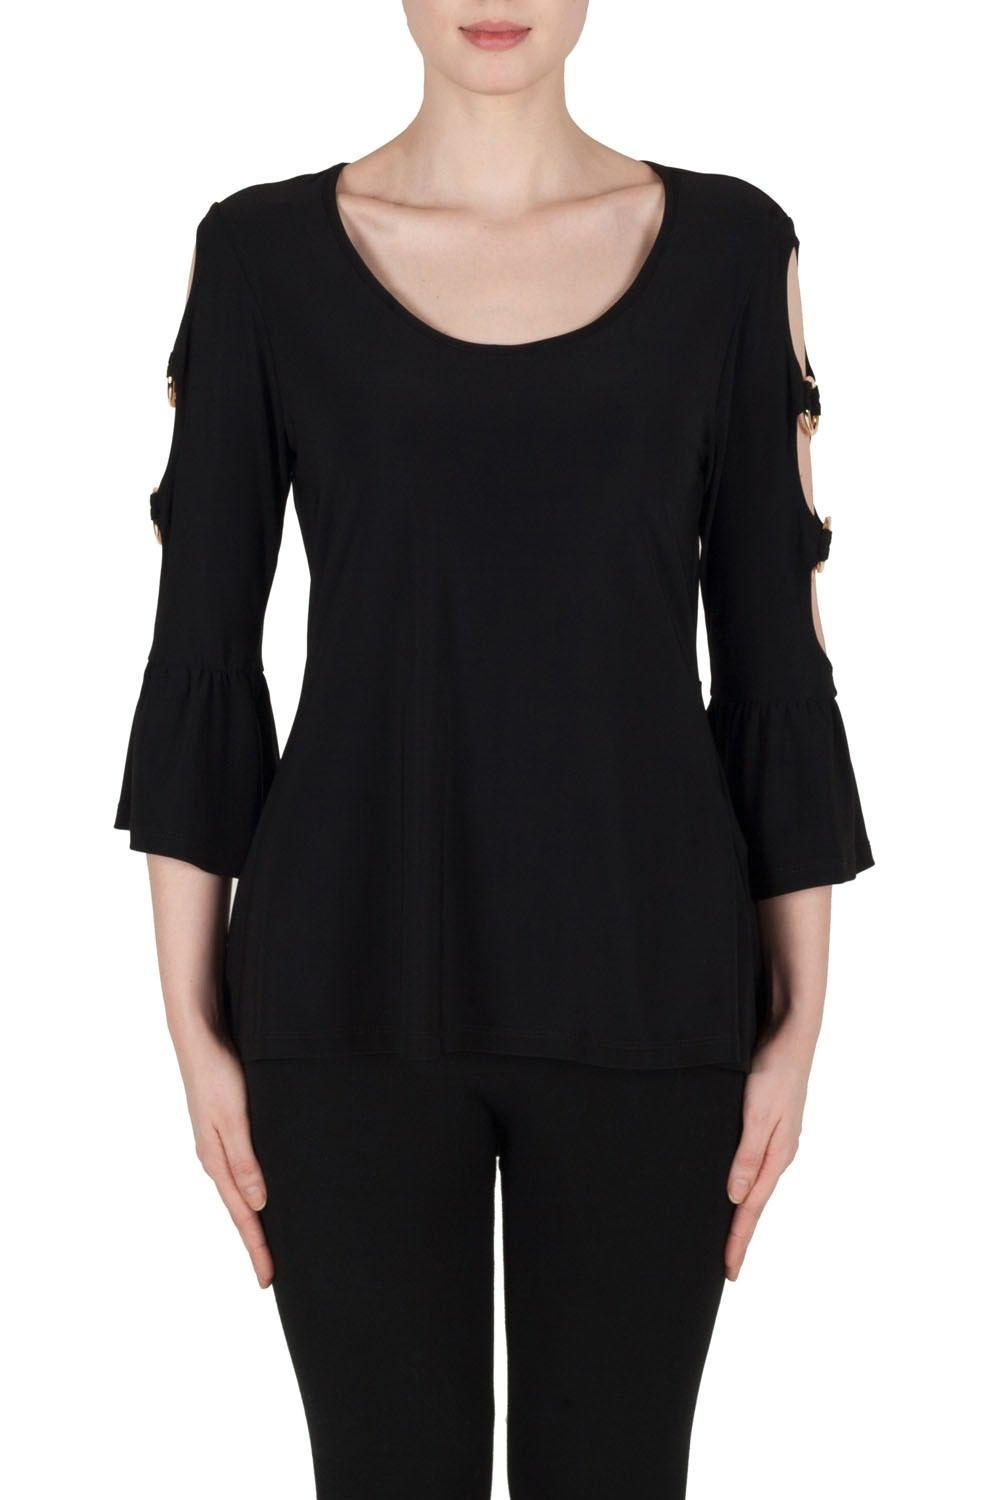 Joseph Ribkoff Black Top With Bell-Style Sleeves Style 173104, Size 4